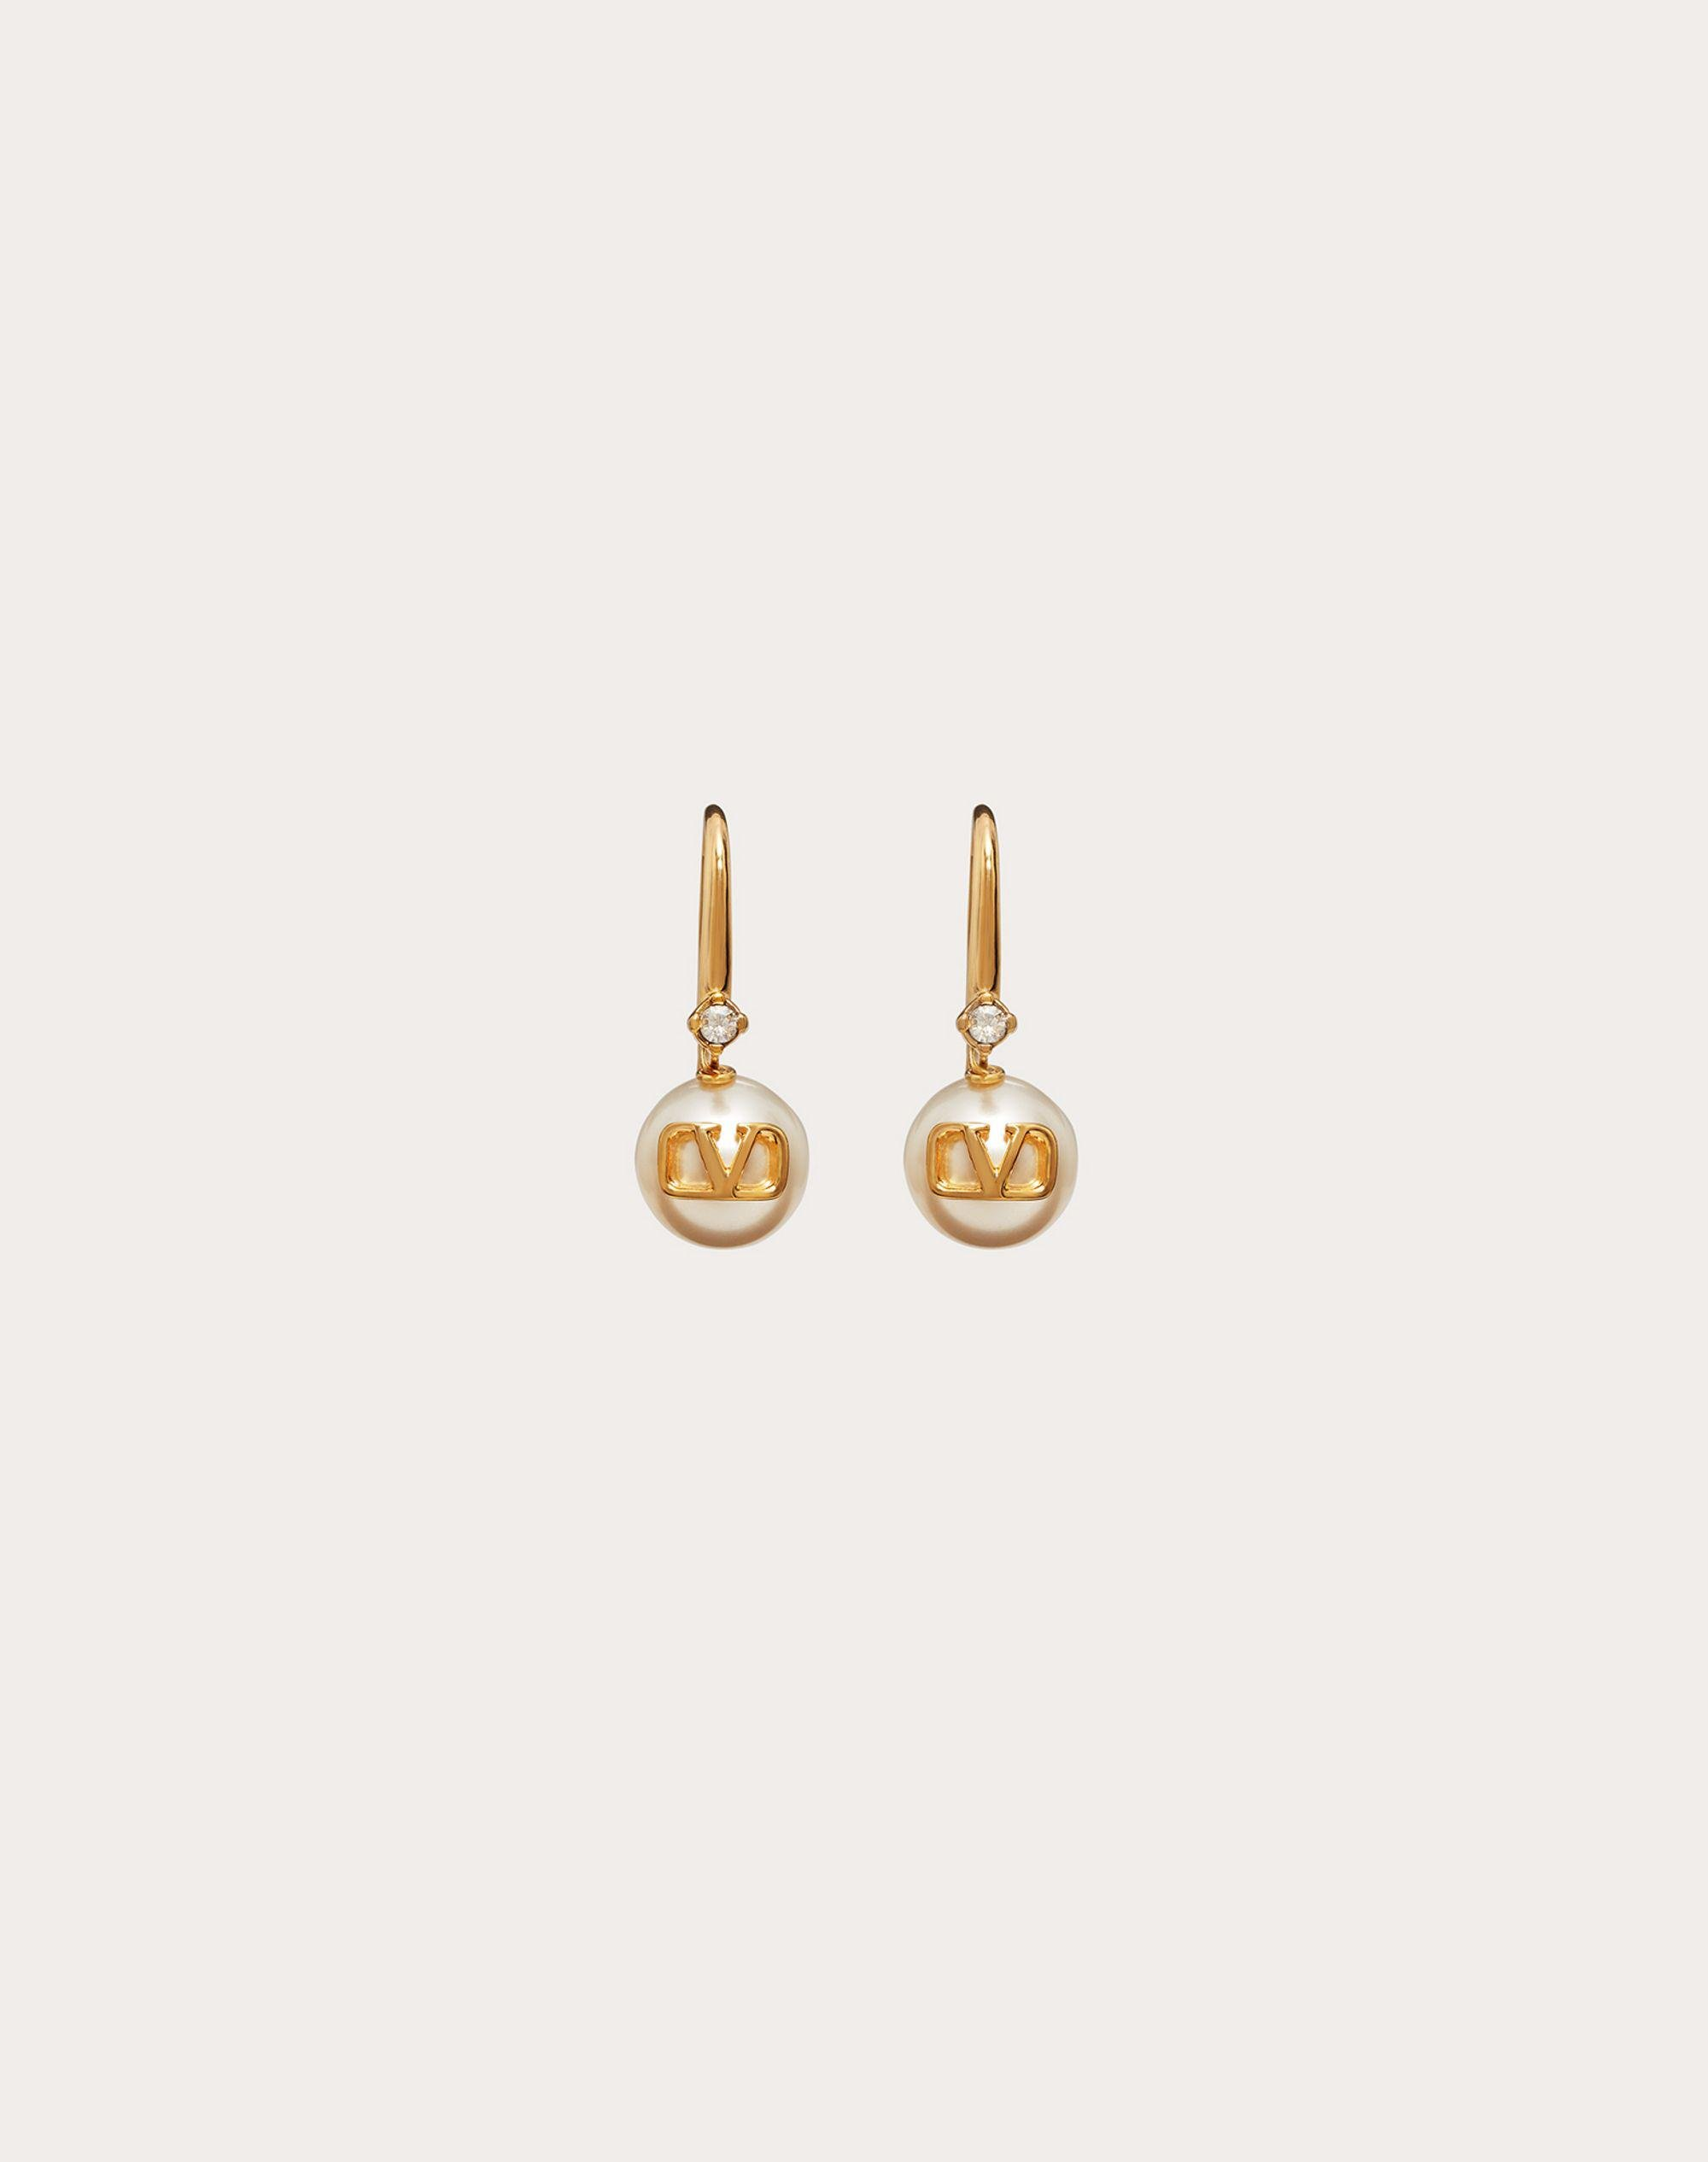 VLogo Signature Earrings with Pearls and Crystals